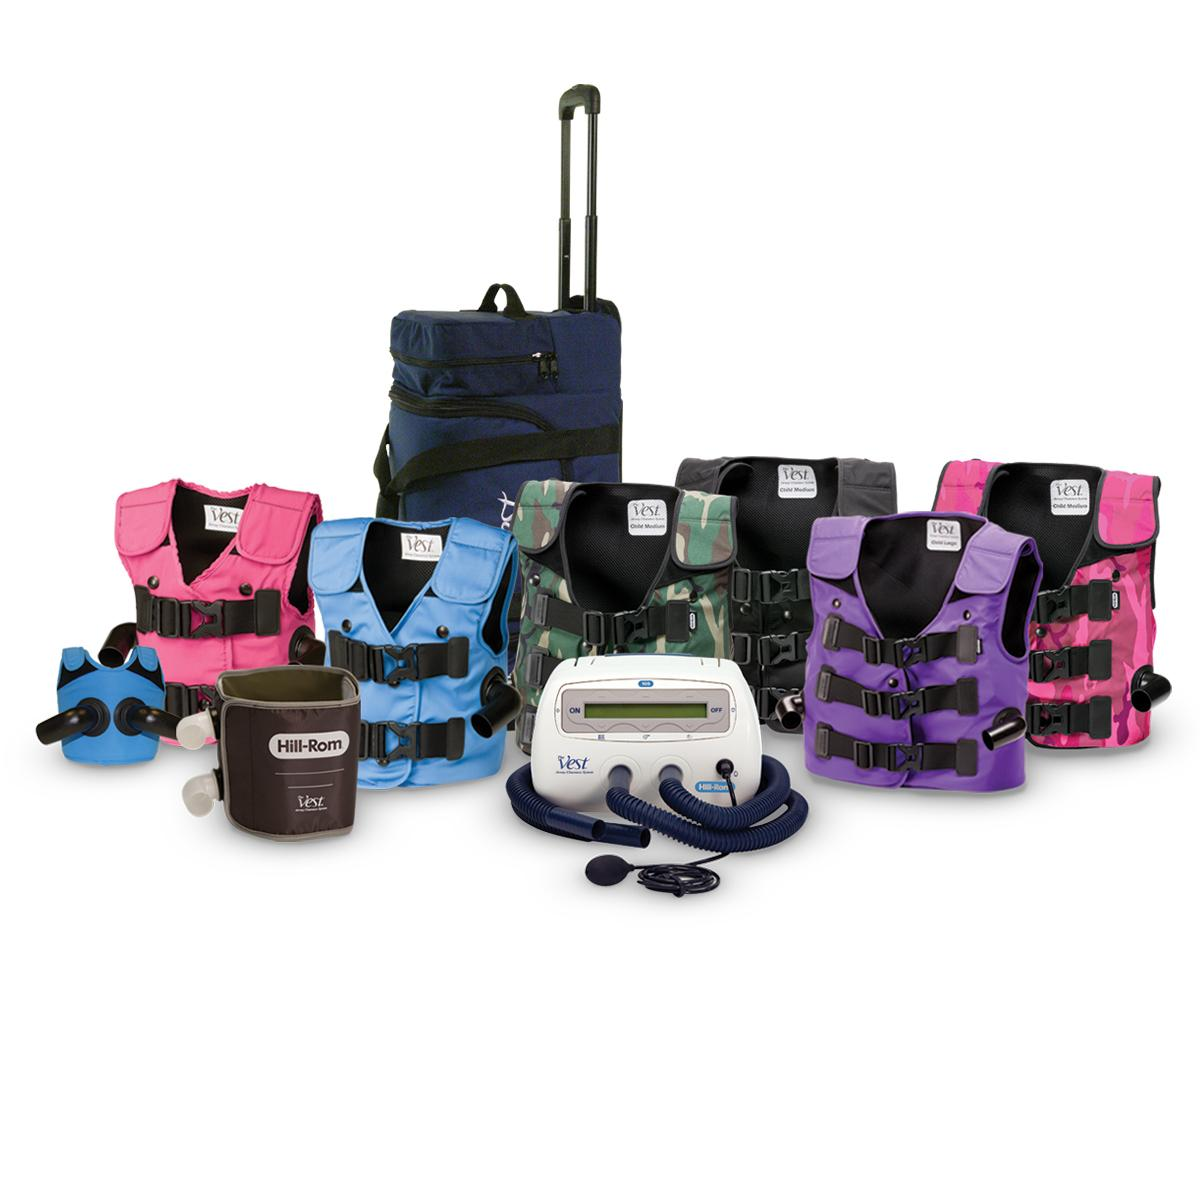 The Vest System, Model 105, collage of vests in different styles and colors, with control unit and bag